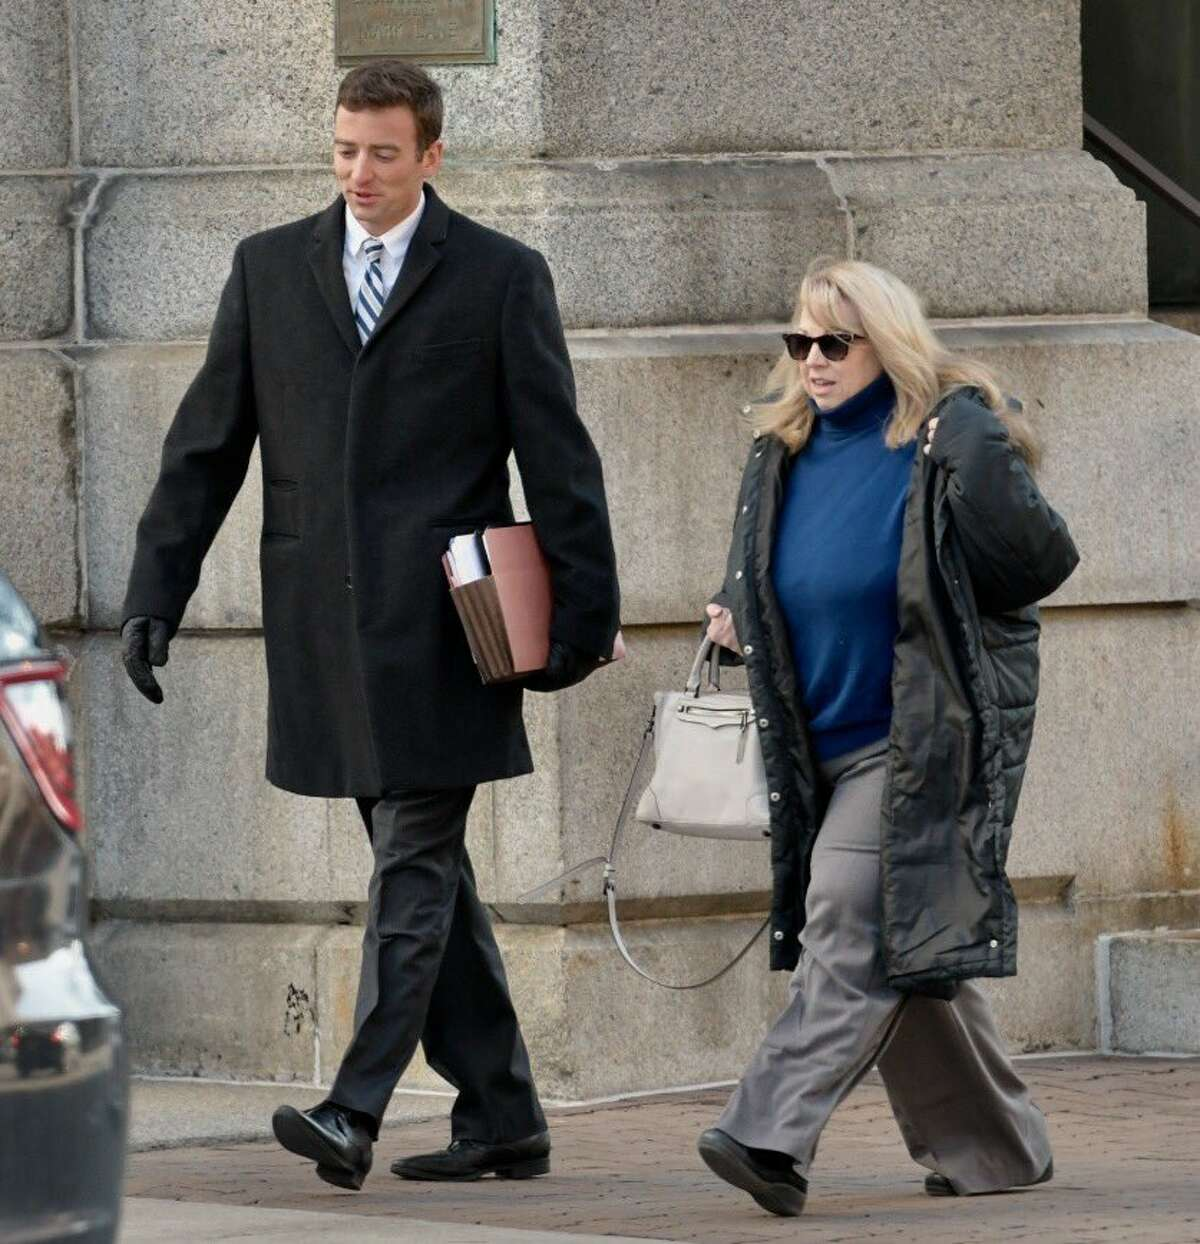 Diane Backis, right, heads to U.S. District Court with her attorney, Steve Eisenman, on Monday morning. Backis, an accounting official with the Cargill company, pleaded guilty to federal charges, admitting she stole $3.1 million from the company. (Skip Dickstein / Times Union)